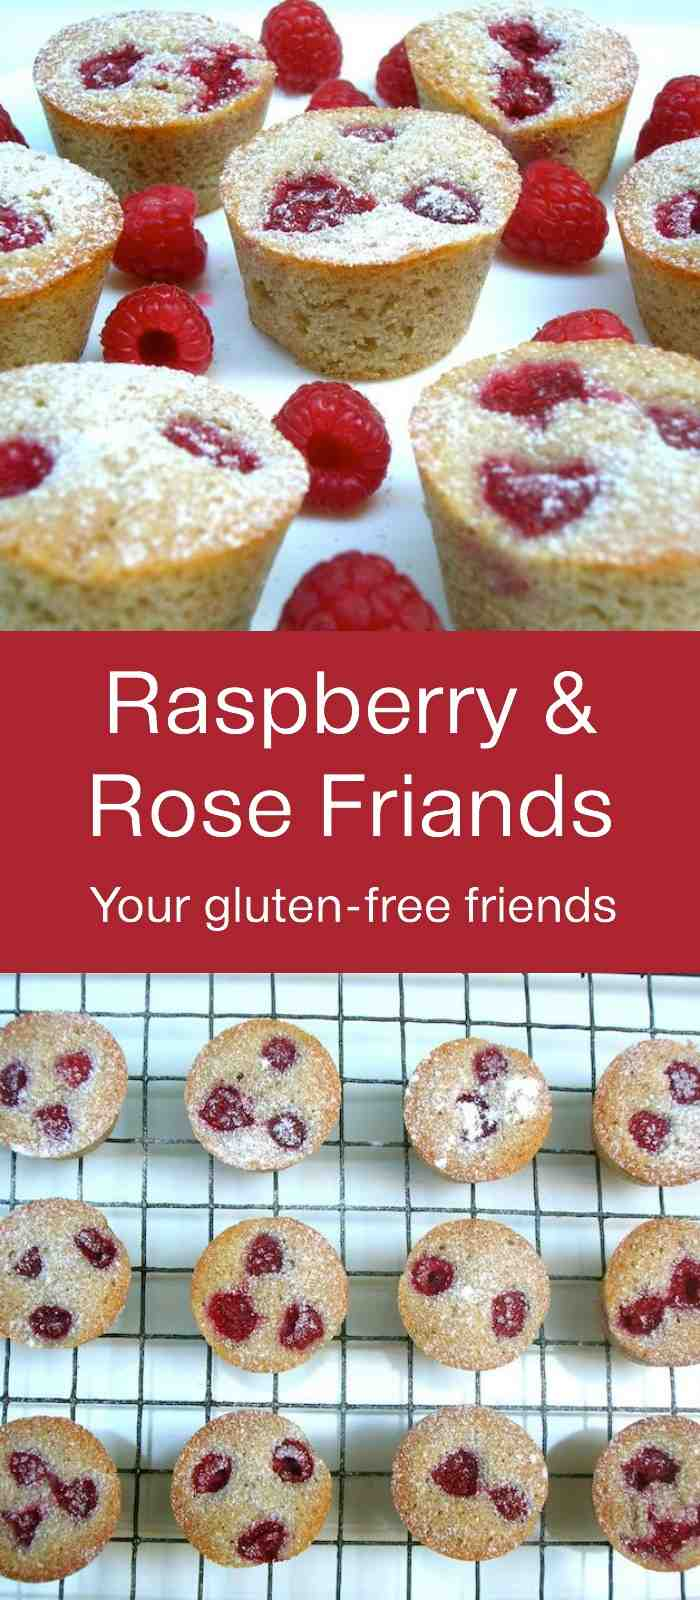 Raspberry Rose Friands - delicious little cakes that are gluten-free. Easy to make too.